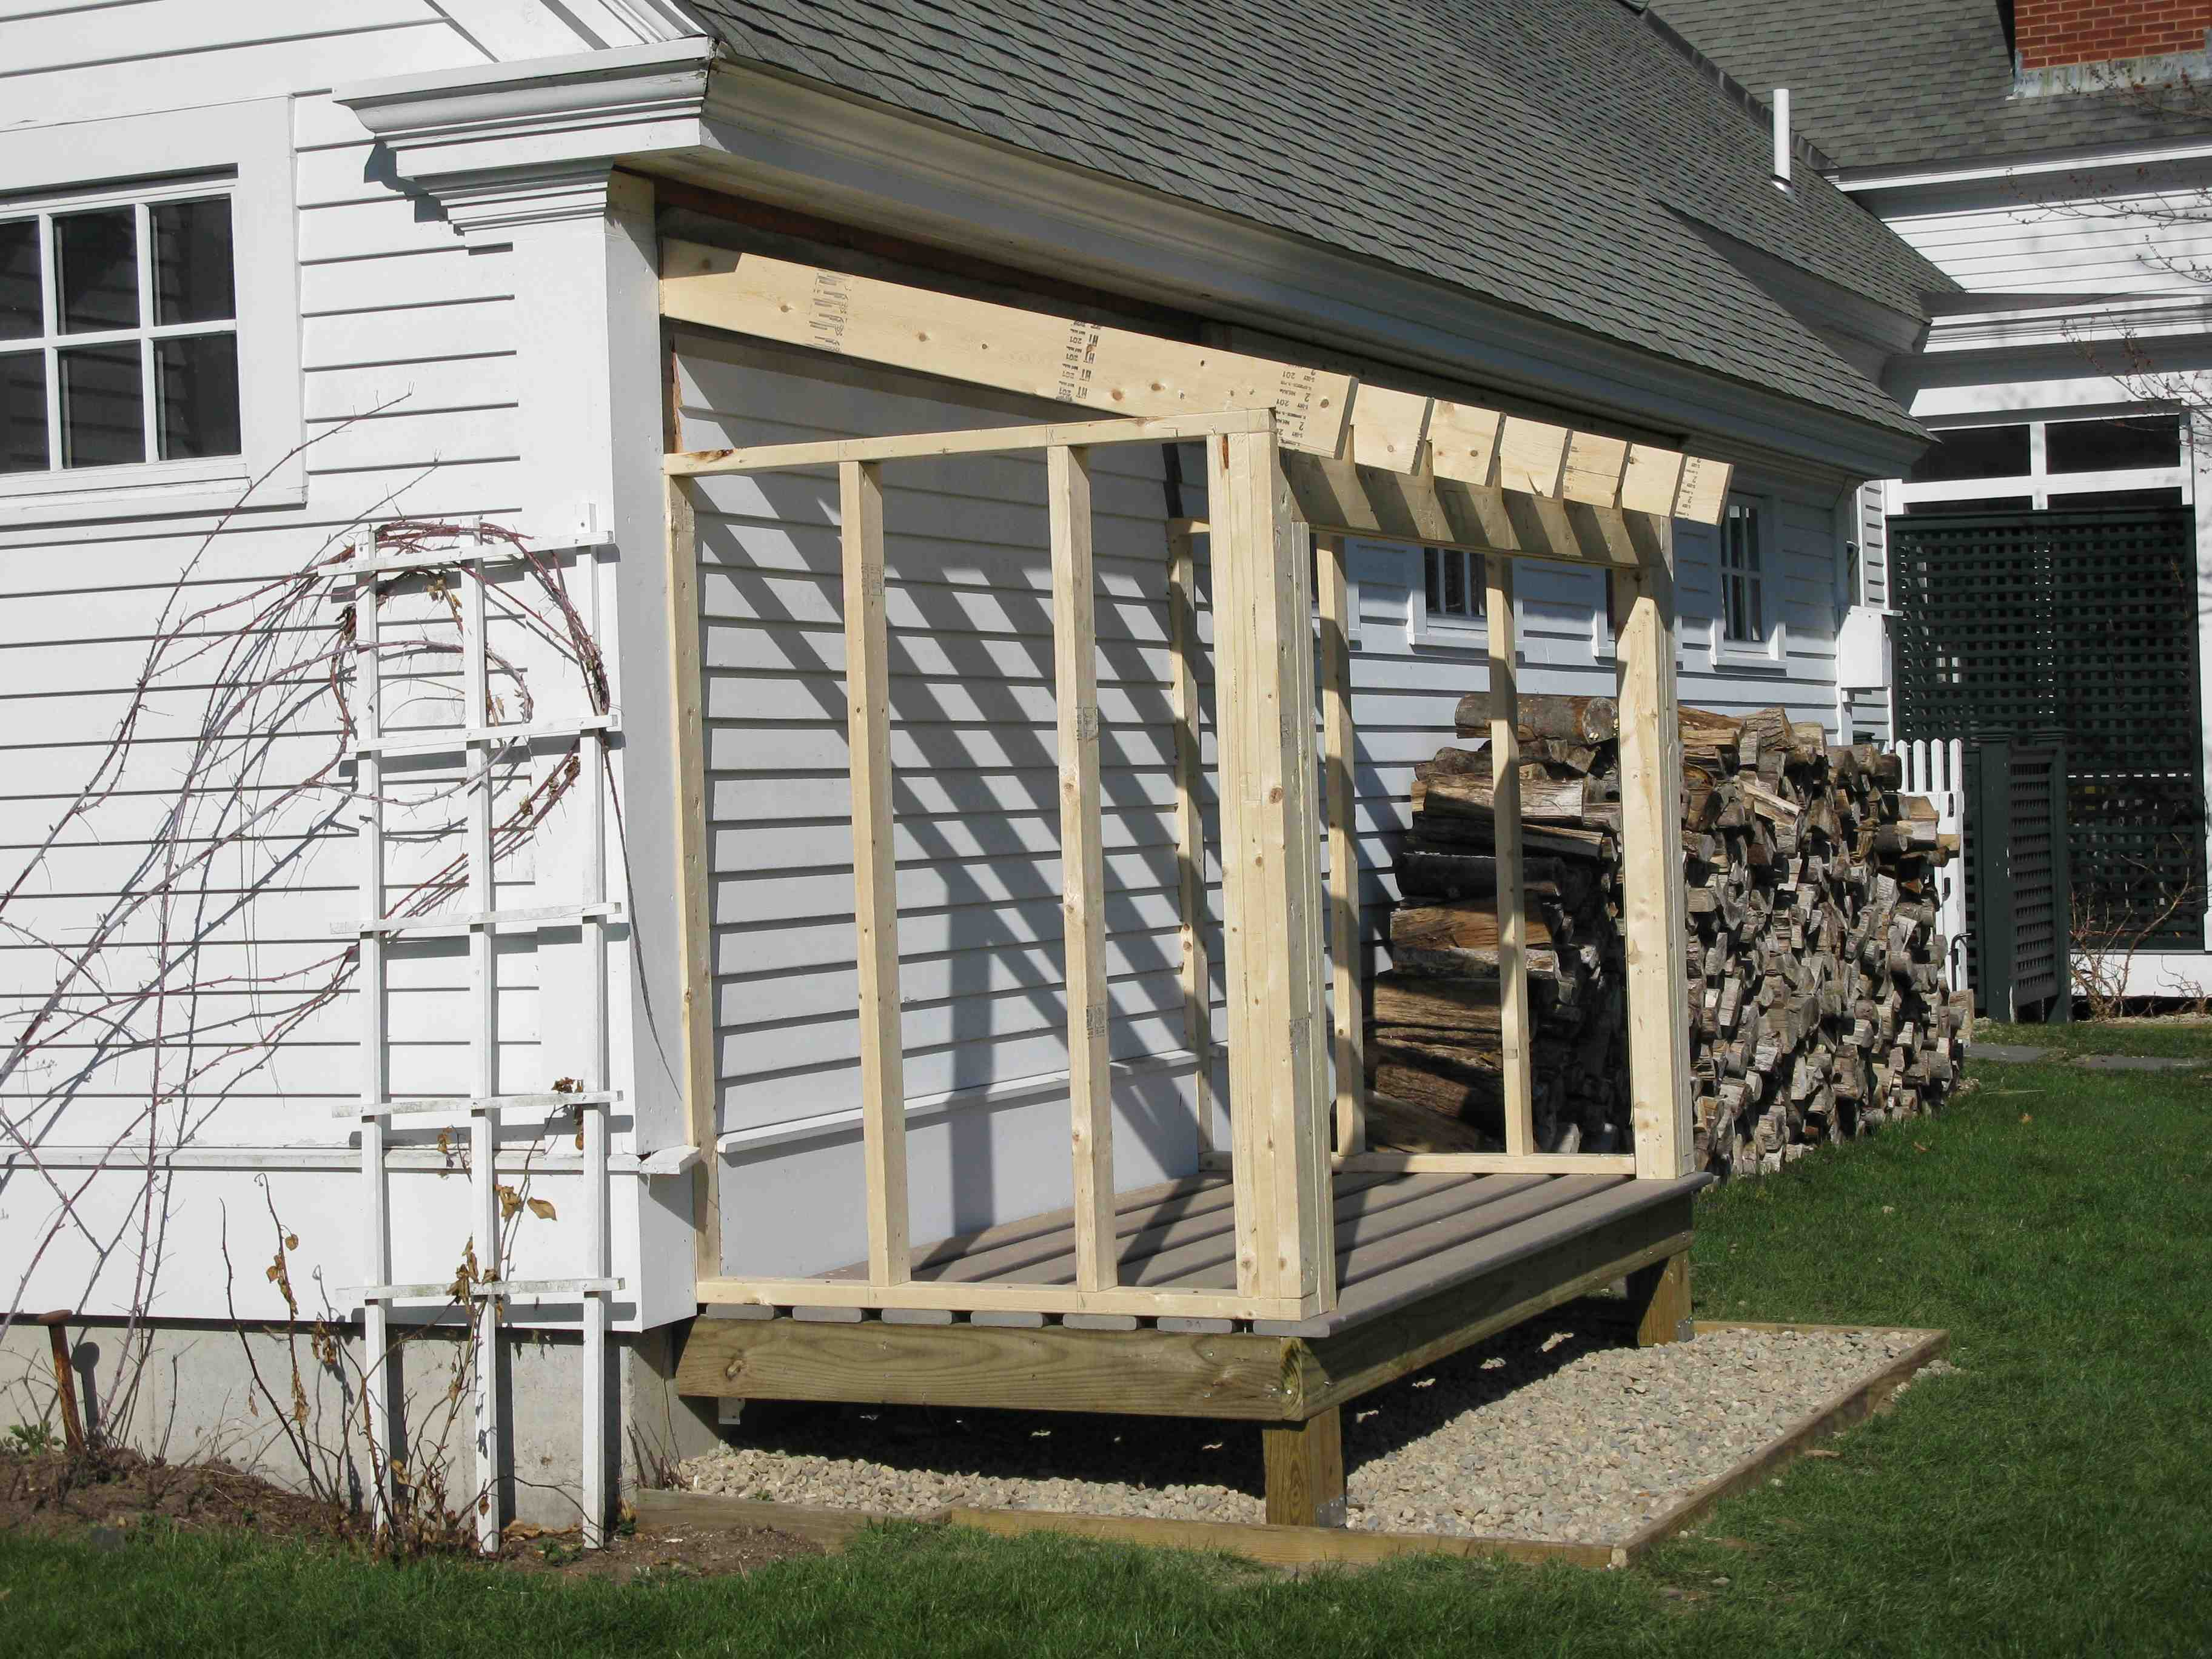 build crop wood q shed cc a anchor small at ideas sheds npci advice how b art to wooden diy